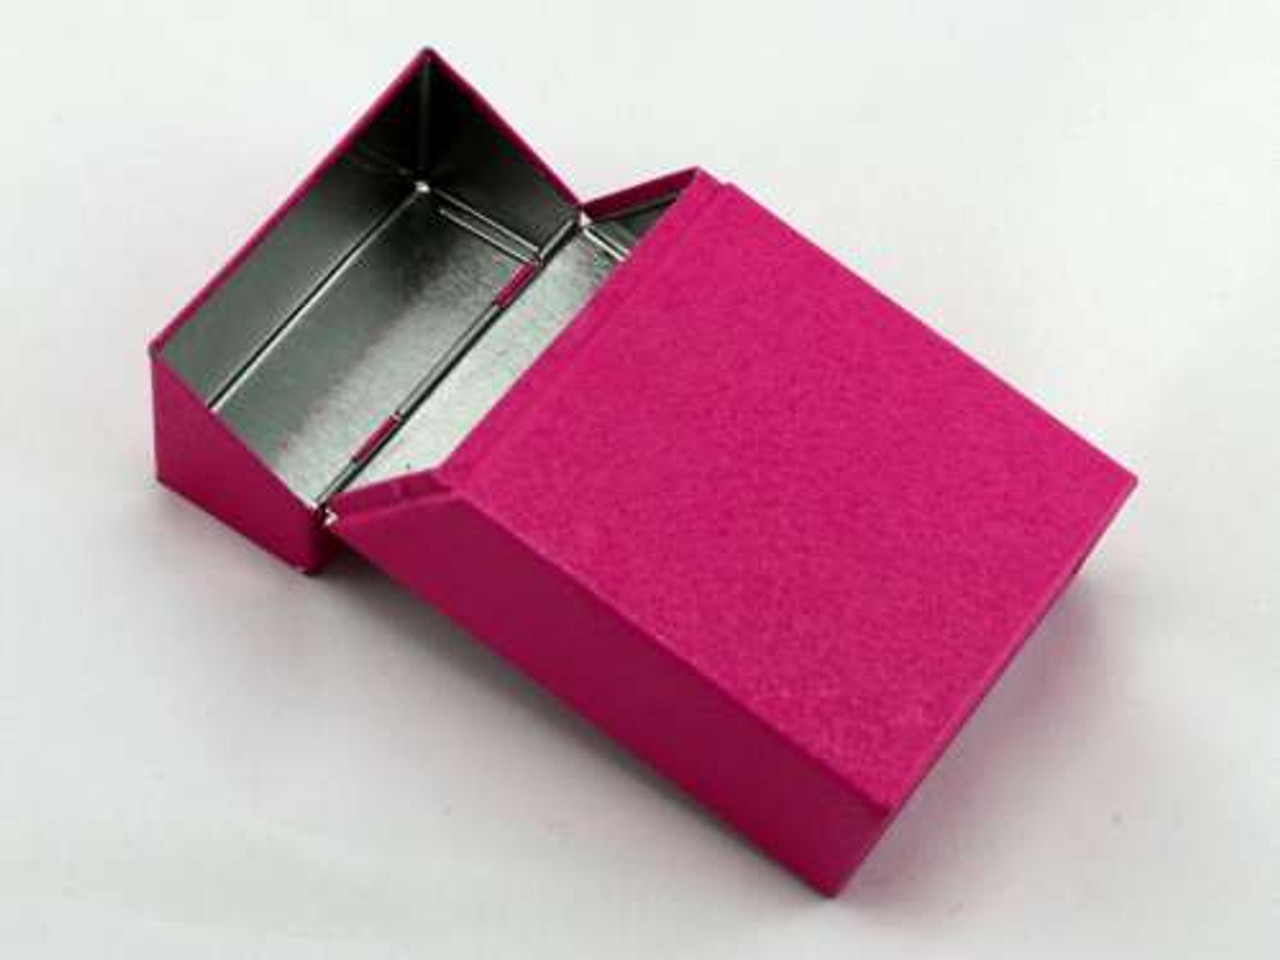 Pink PC Cigarette Pack Holder